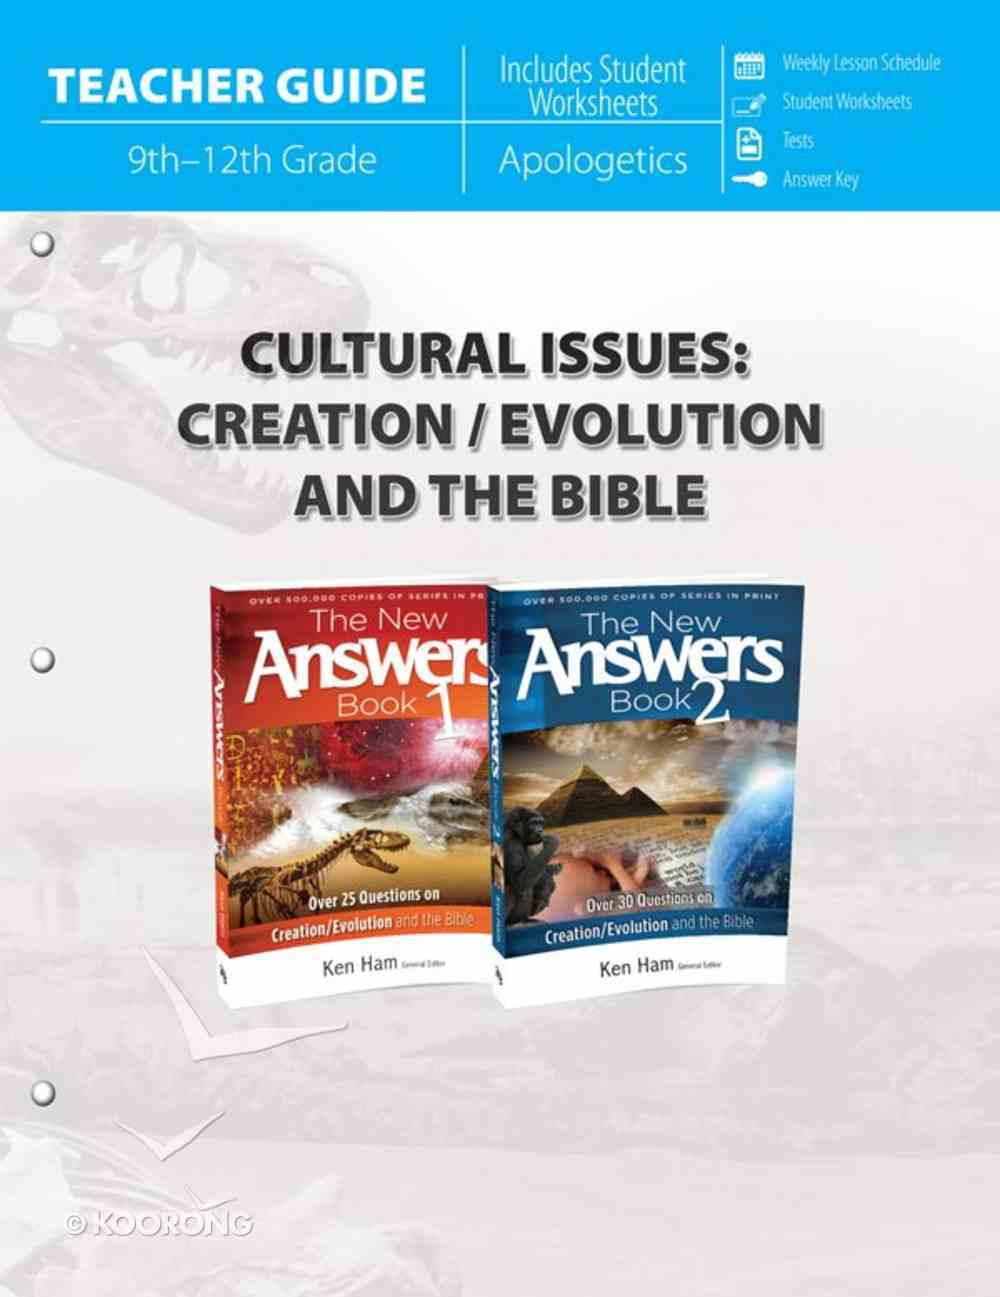 Cultural Issues: Creation/Evolution and the Bible 9-12 Grade (Teacher Guide) Paperback